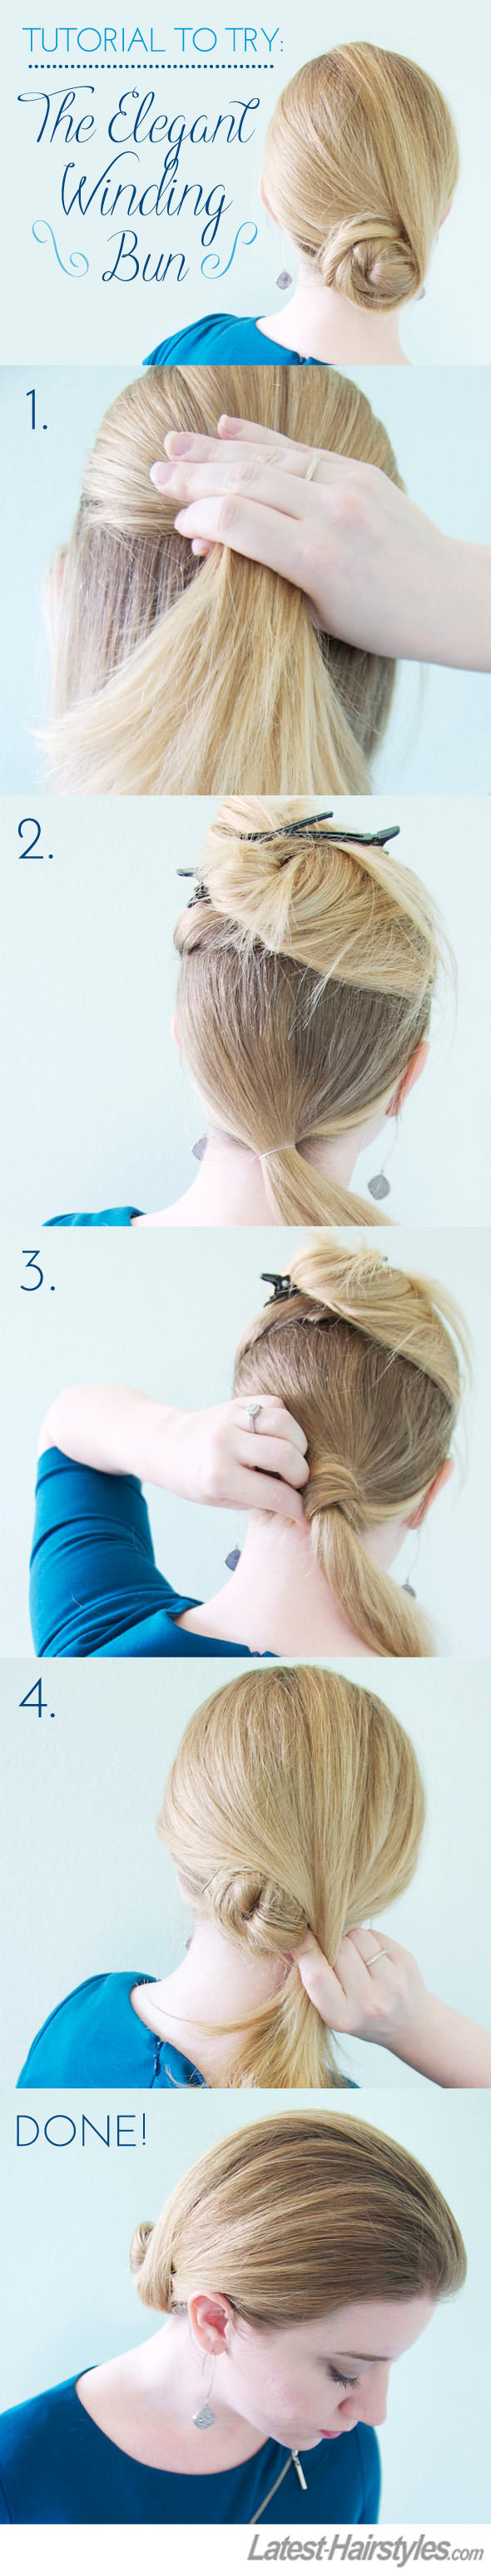 The Elegant Winding Bun Tutorial